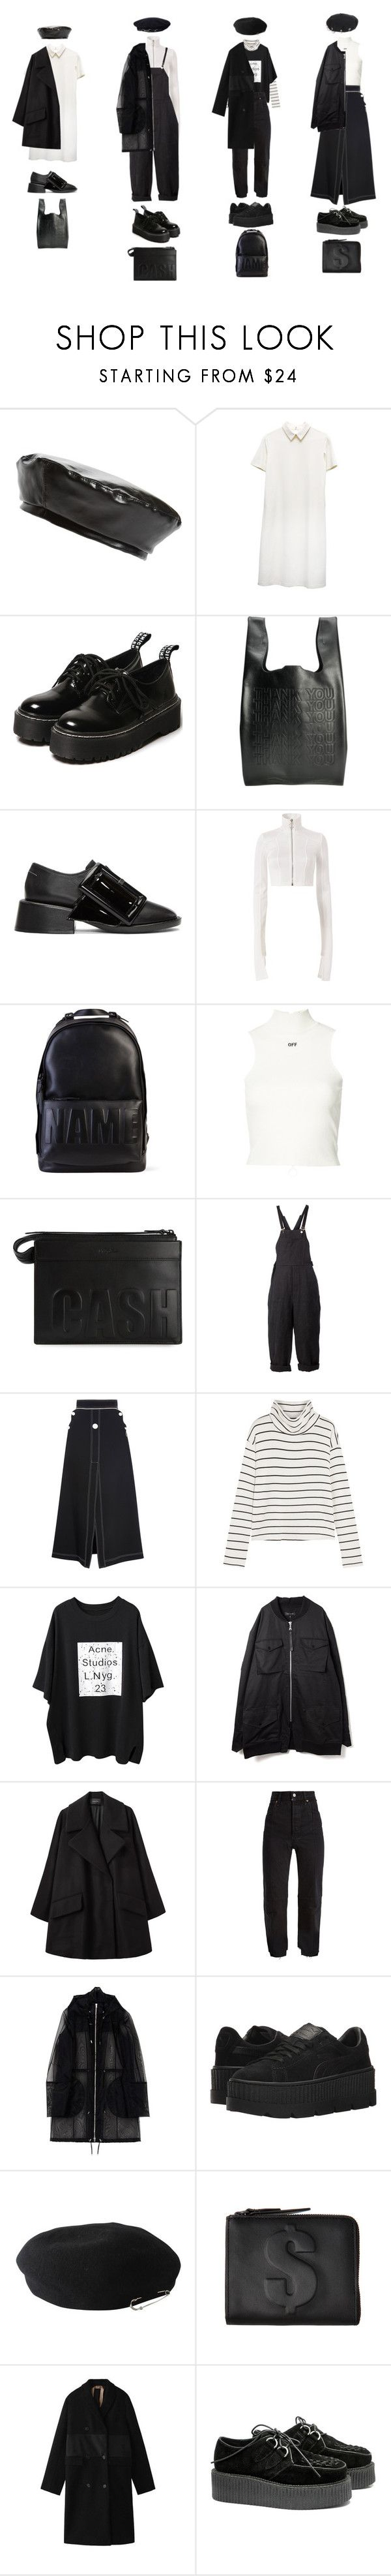 """""""Untitled #1319"""" by jayda-xx ❤ liked on Polyvore featuring Steve Madden, Cast of Vices, MM6 Maison Margiela, Off-White, 3.1 Phillip Lim, Aganovich, E L L E R Y, Splendid, Passarella Death Squad and Simone Rocha"""